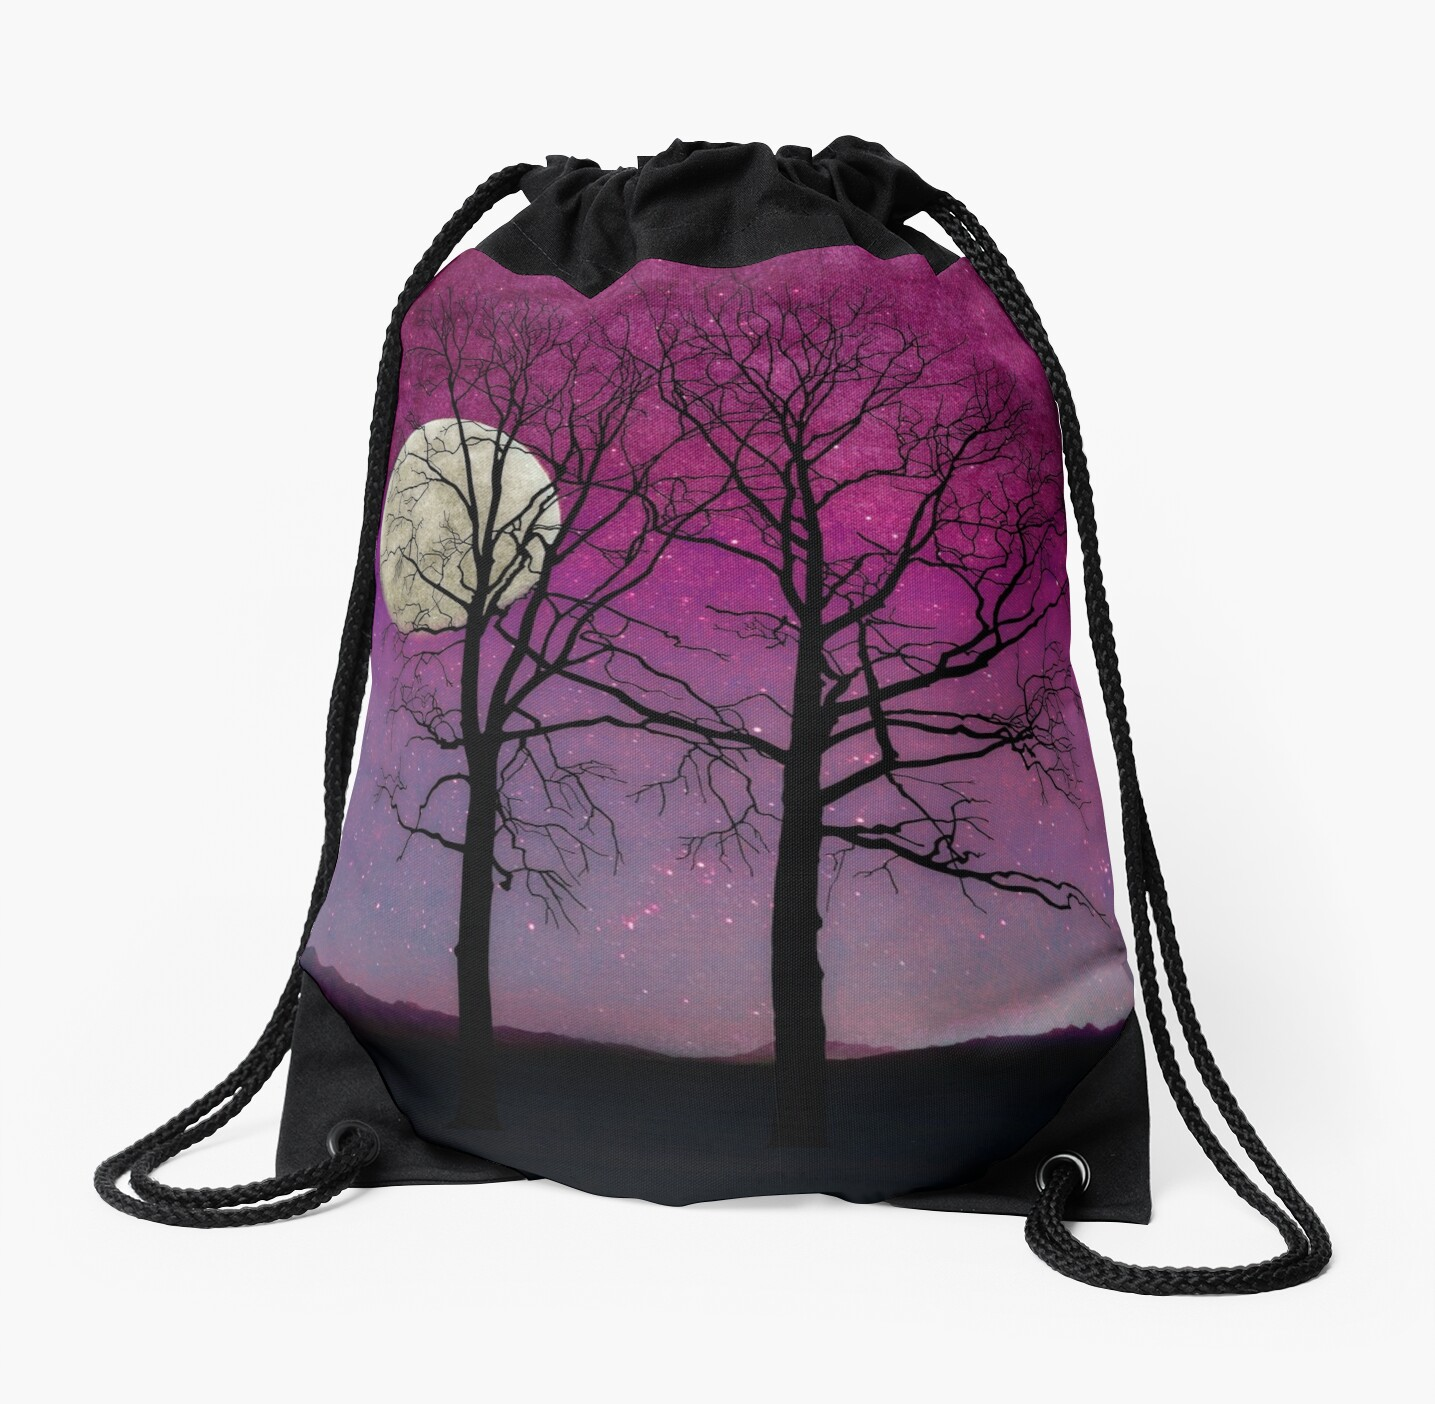 Solitude II Harvest Moon, trees, pink opal sky stars by Glimmersmith